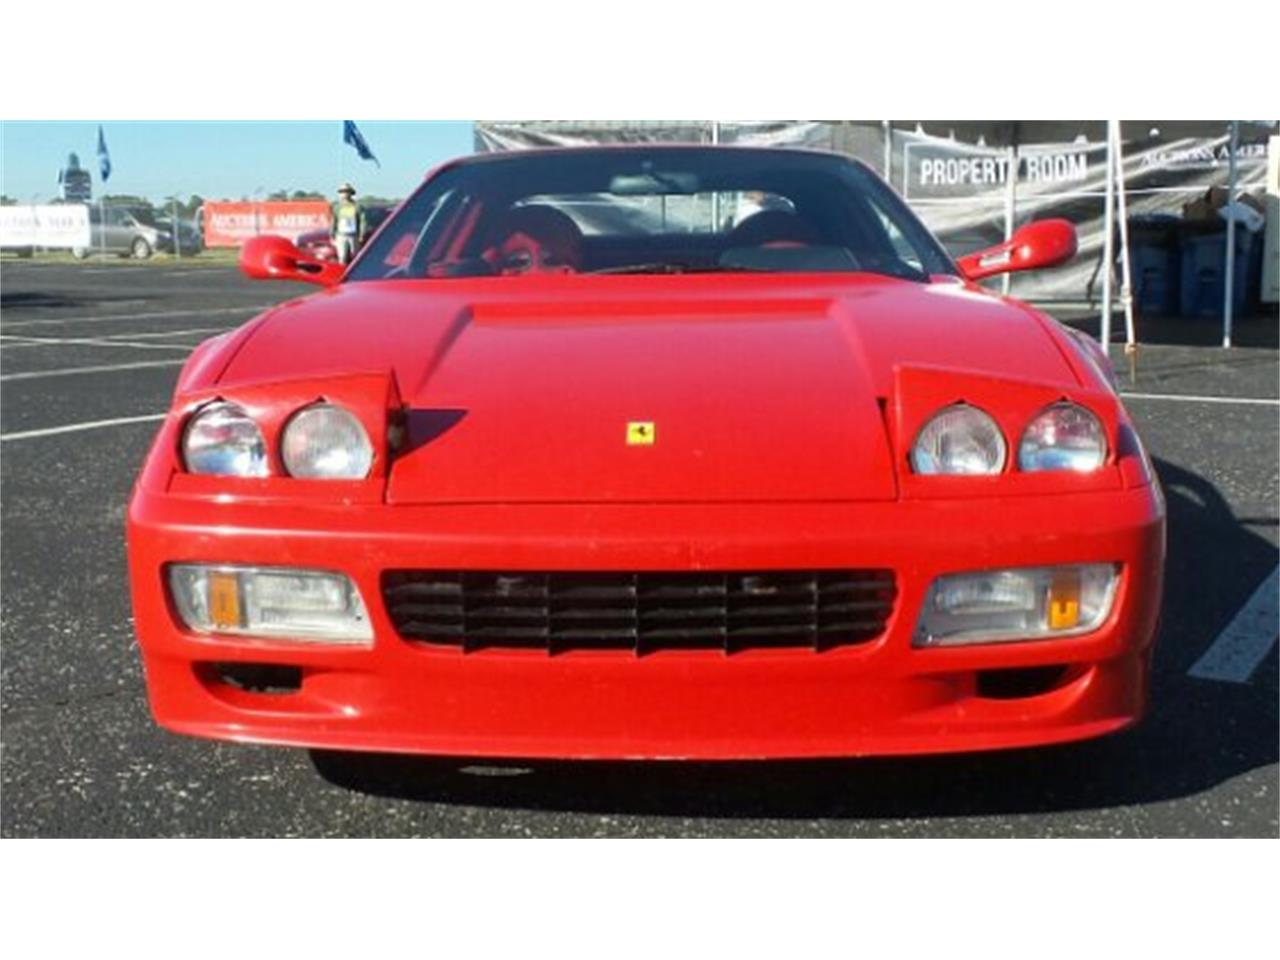 1984 Pontiac Fiero Gt 512 Tr Ferrari Kit Car For Sale Classiccars Large Picture Of 84 Located In Indiana